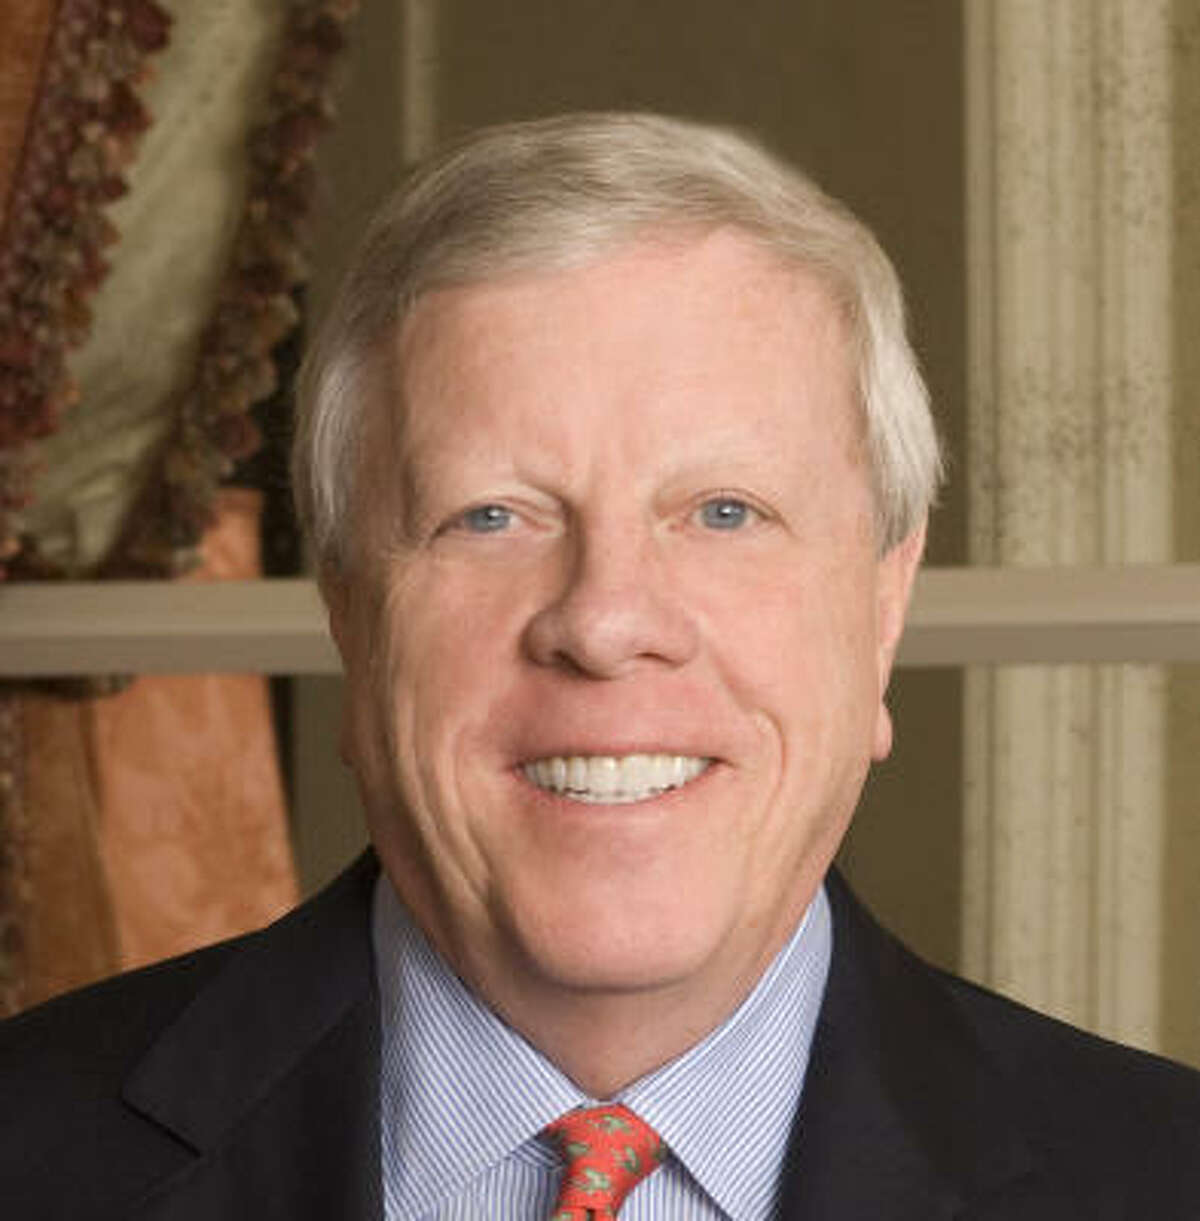 Pipeline mogul Richard Kinder, chairman and CEO of Houston-based Kinder Morgan, ranked as Forbes' third-wealthiest Houstonian and 94th-richest American in 2009 with a $3.2 billion fortune. See the richest Texans here.